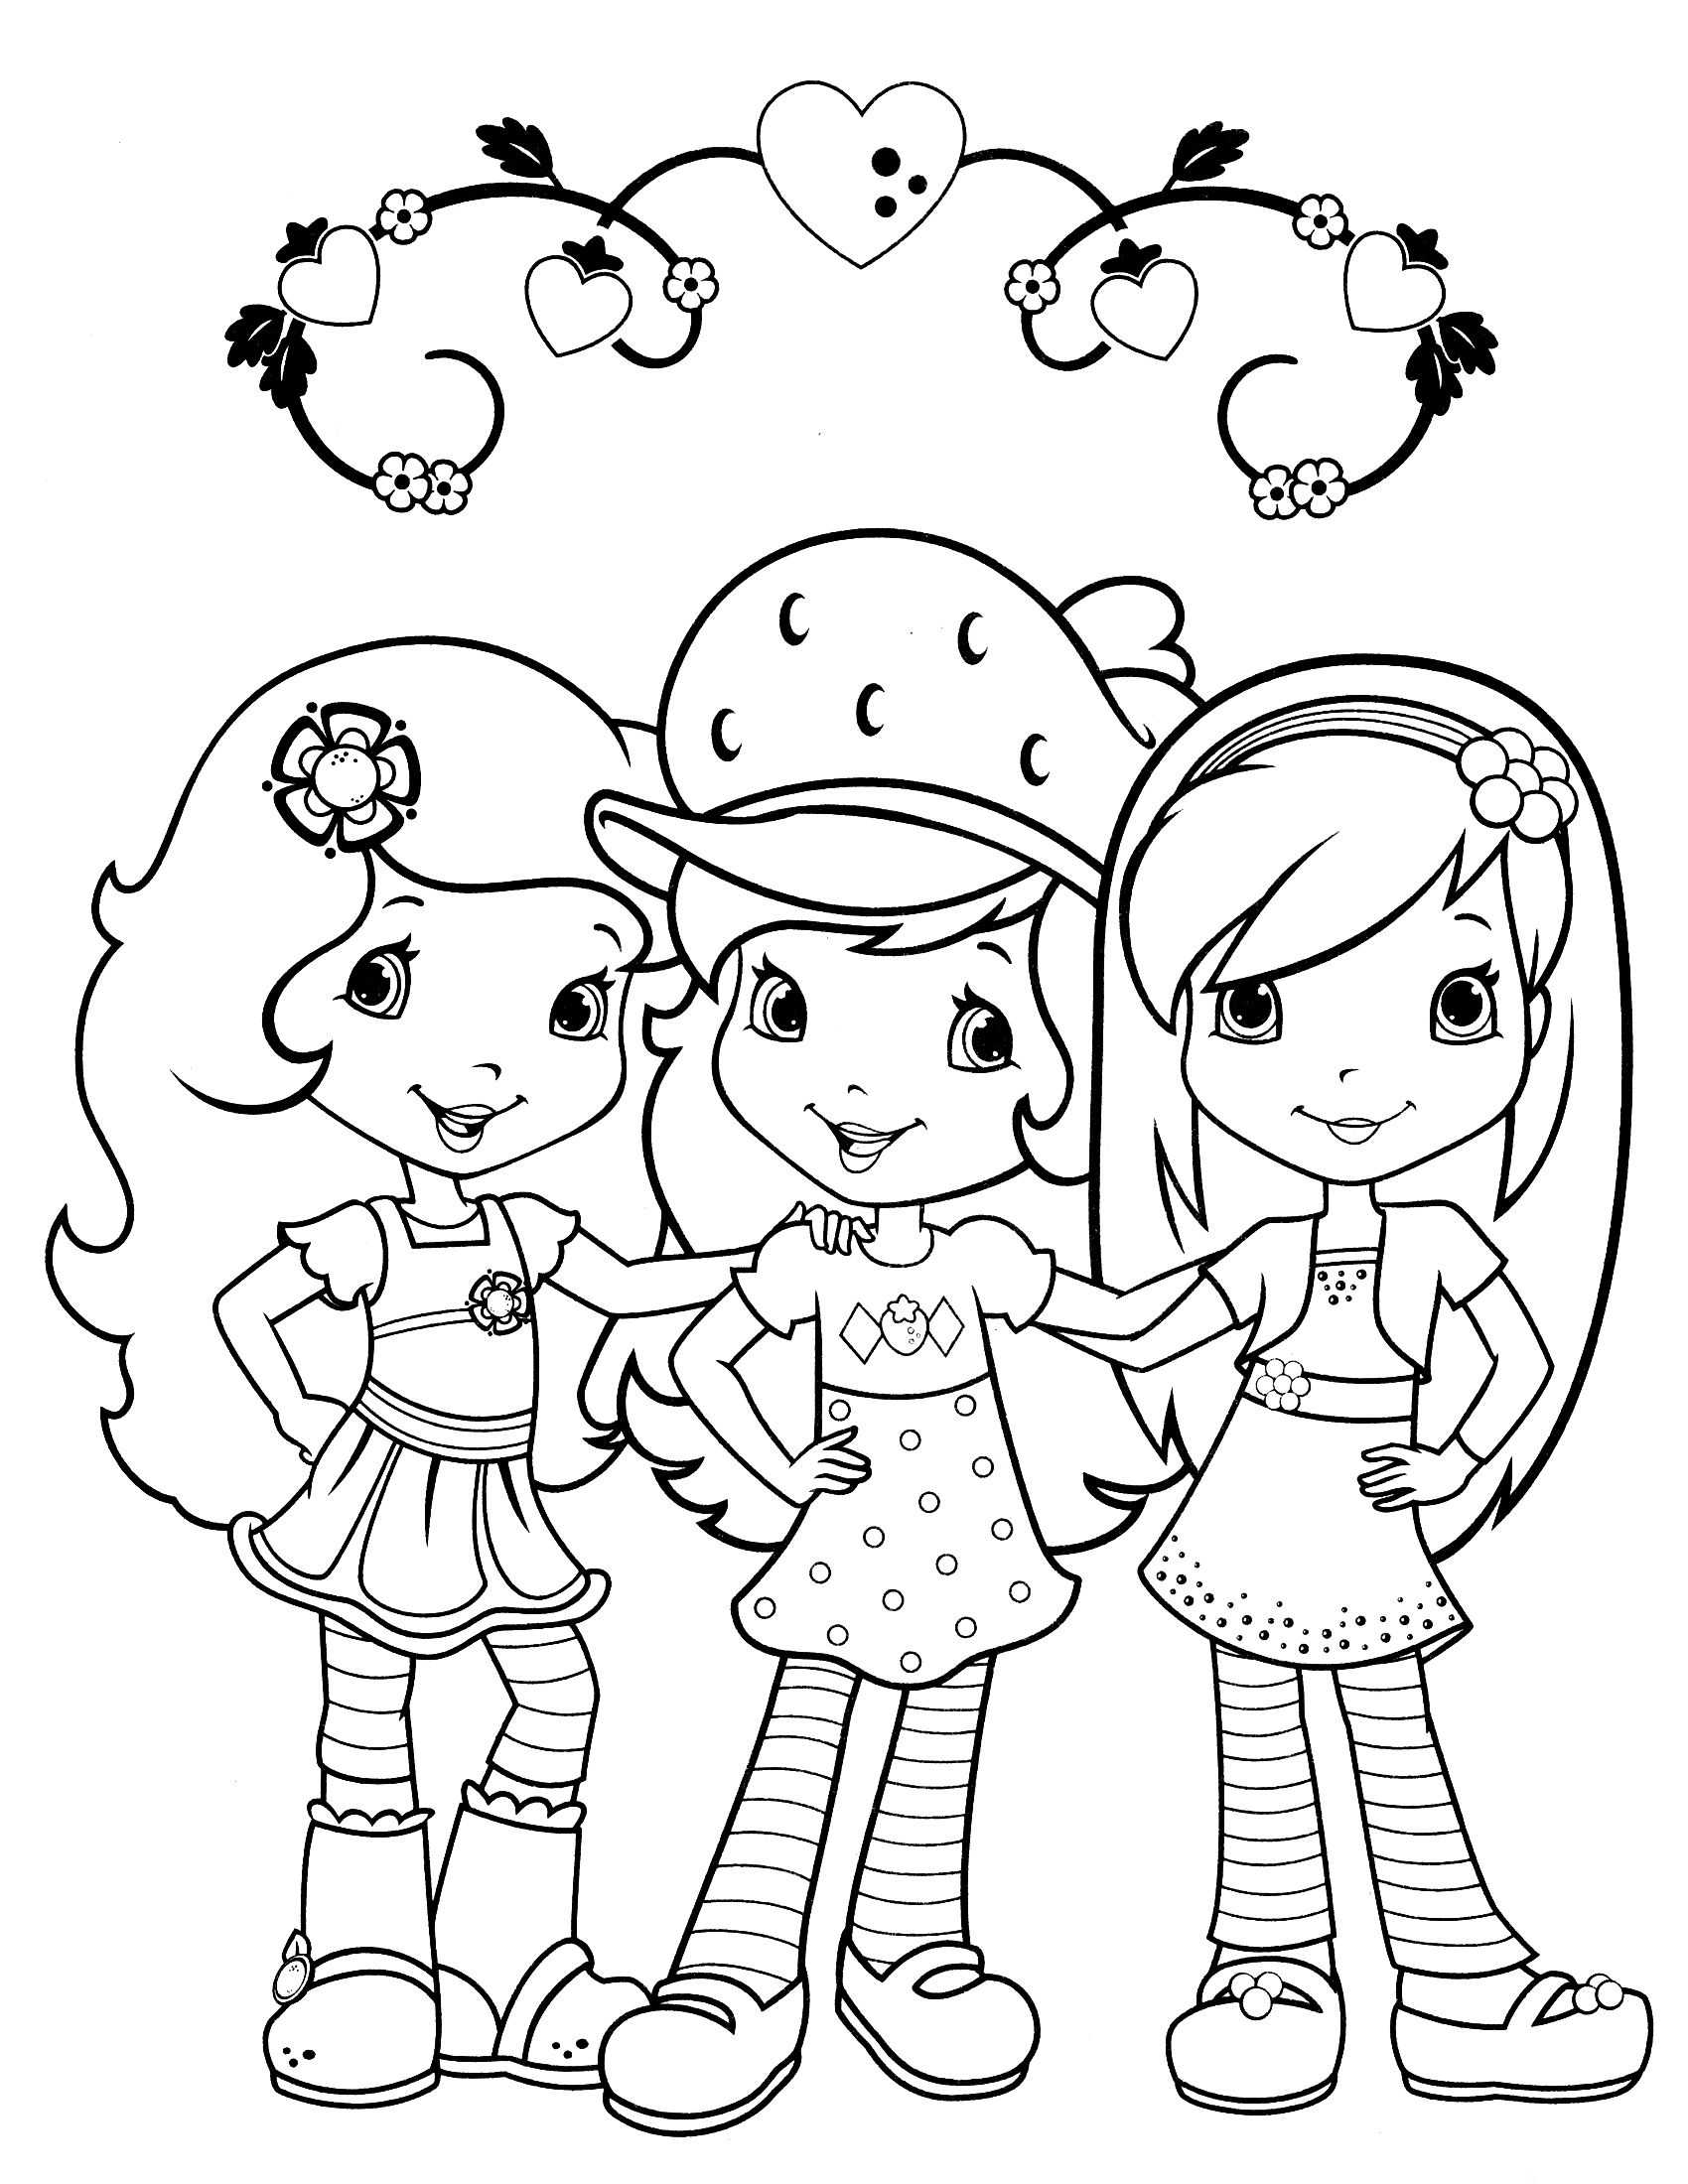 strawberry shortcake coloring page | Вышивка (Embroidery ...